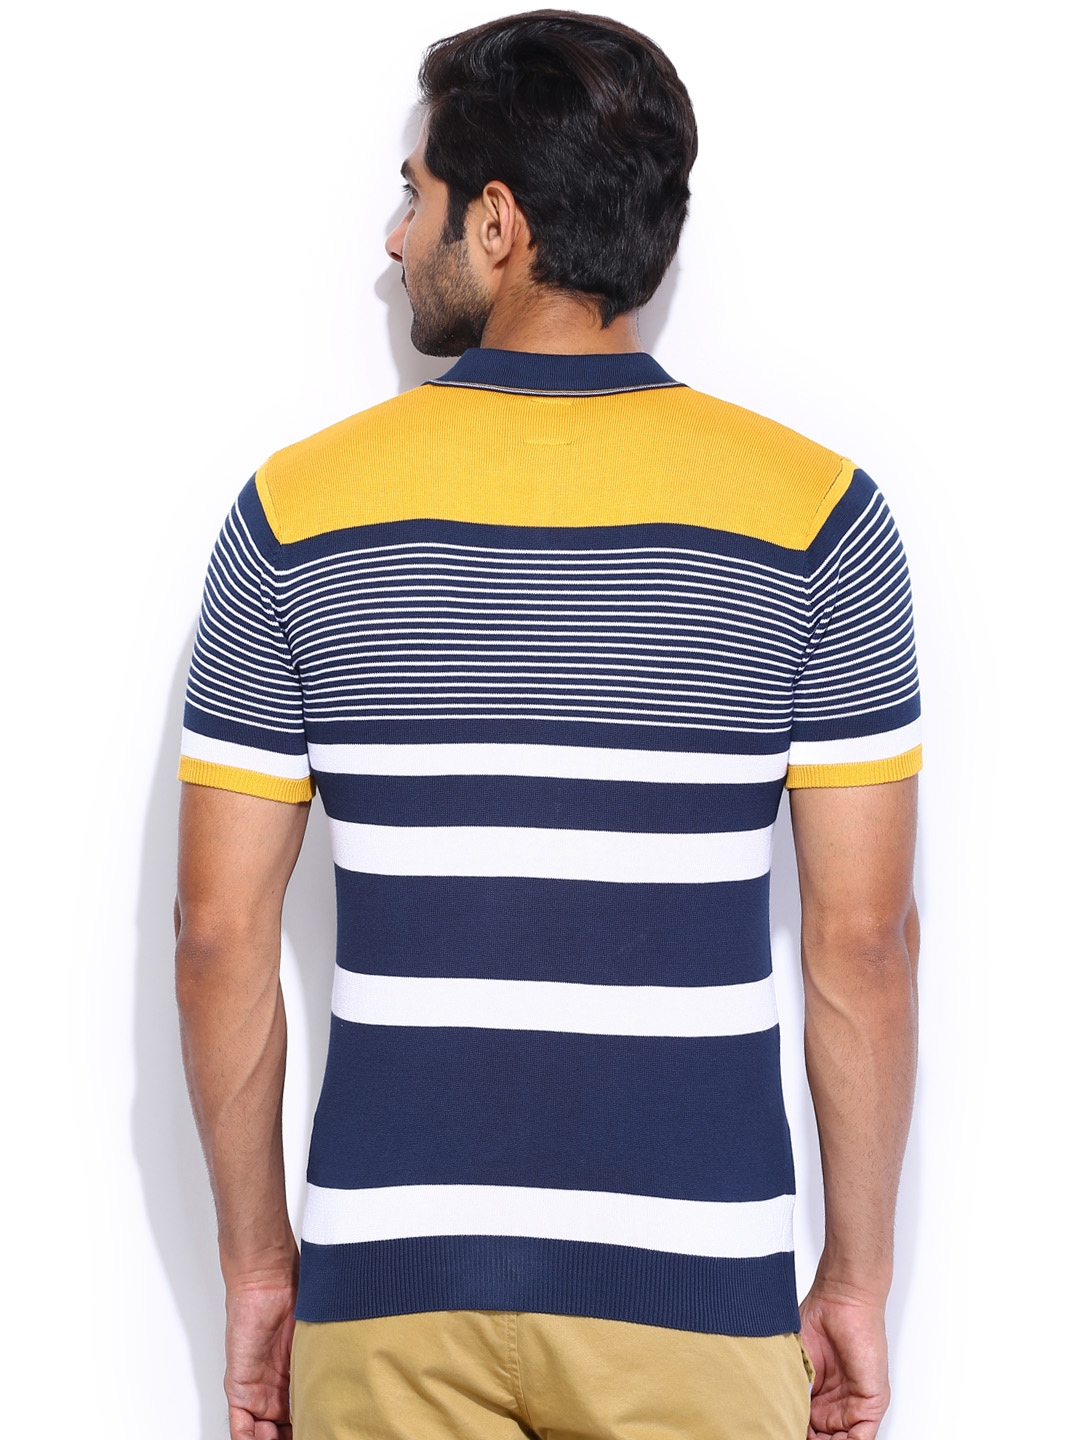 Cover your body with amazing Blue And Yellow Striped t-shirts from Zazzle. Search for your new favorite shirt from thousands of great designs!